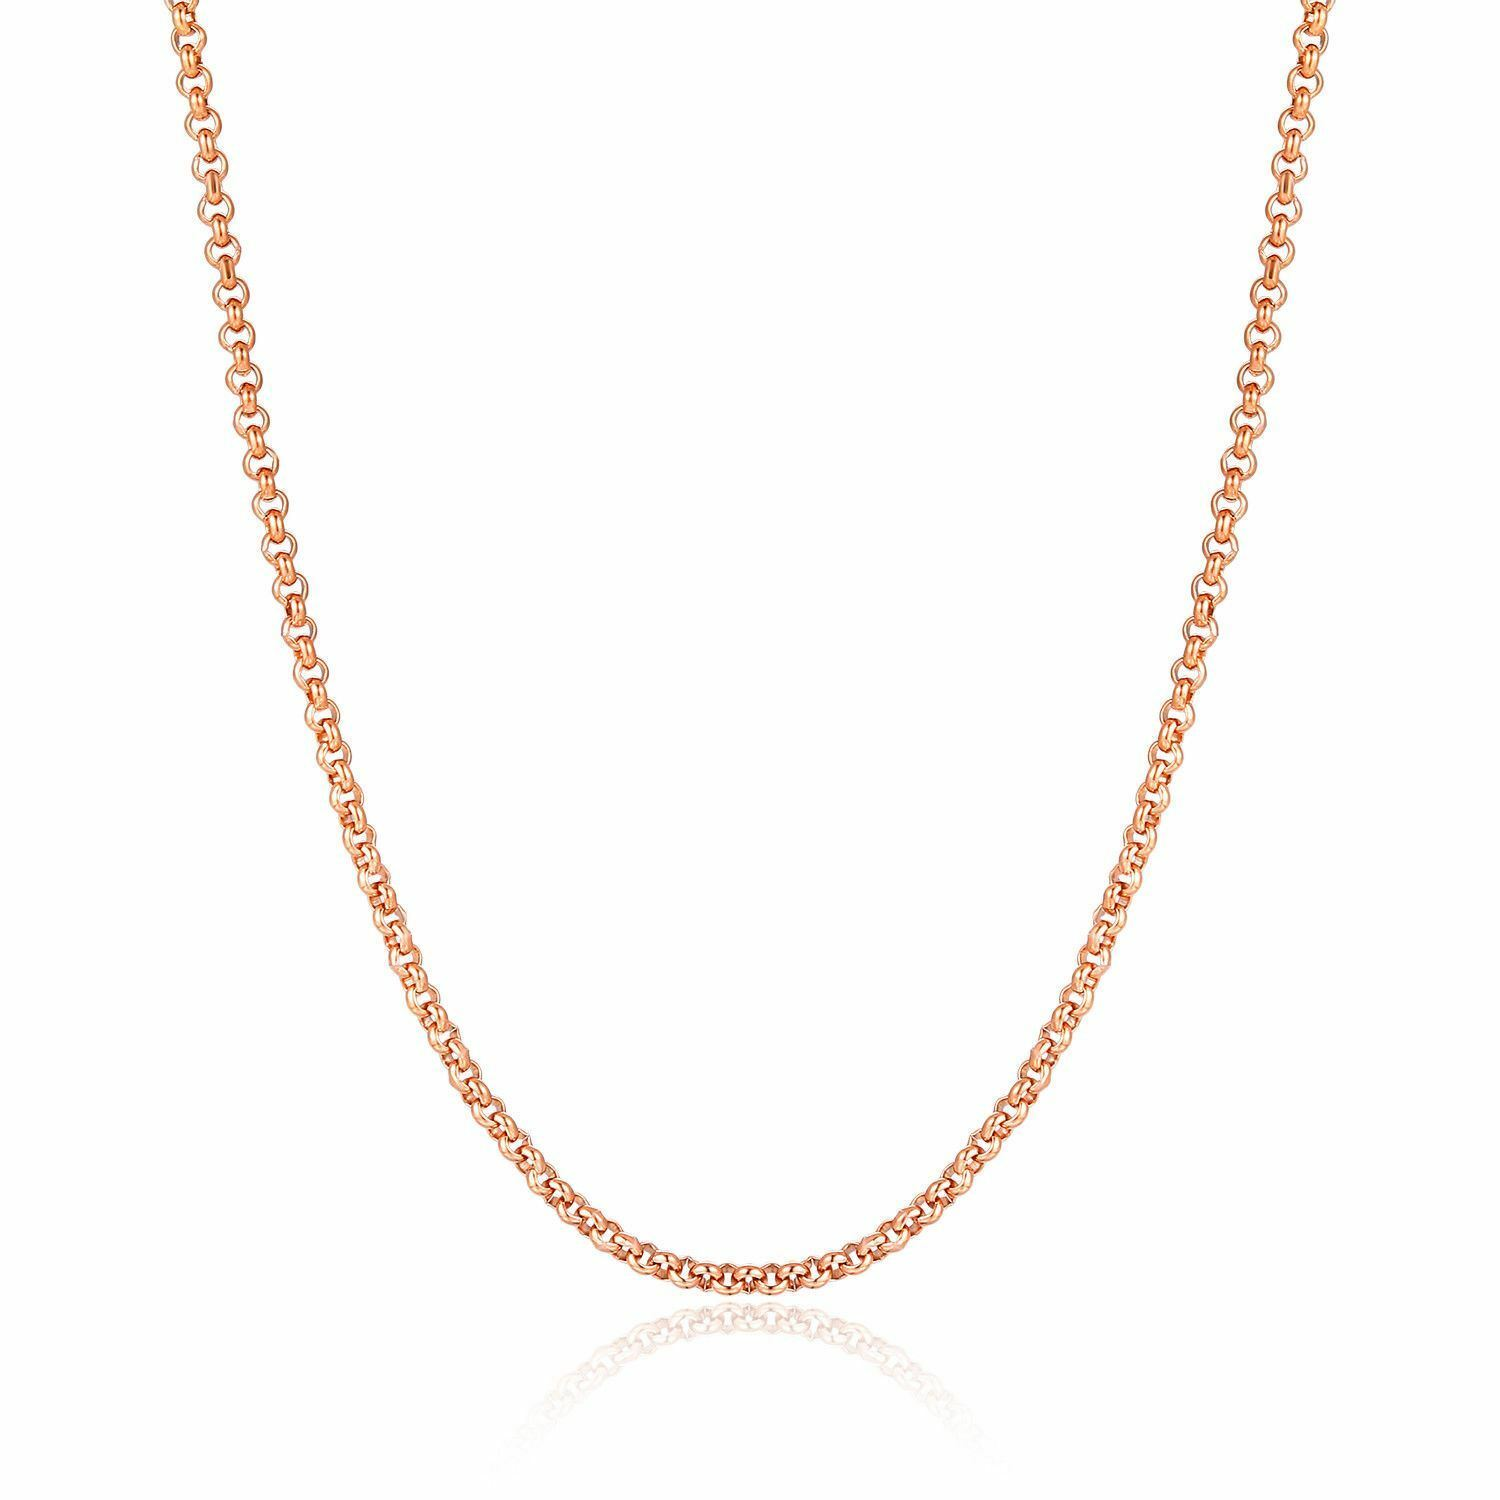 50pcs Wholesale IP Rose Gold Stainless Steel Strong Rolo Chain Necklace 1.5-3mm